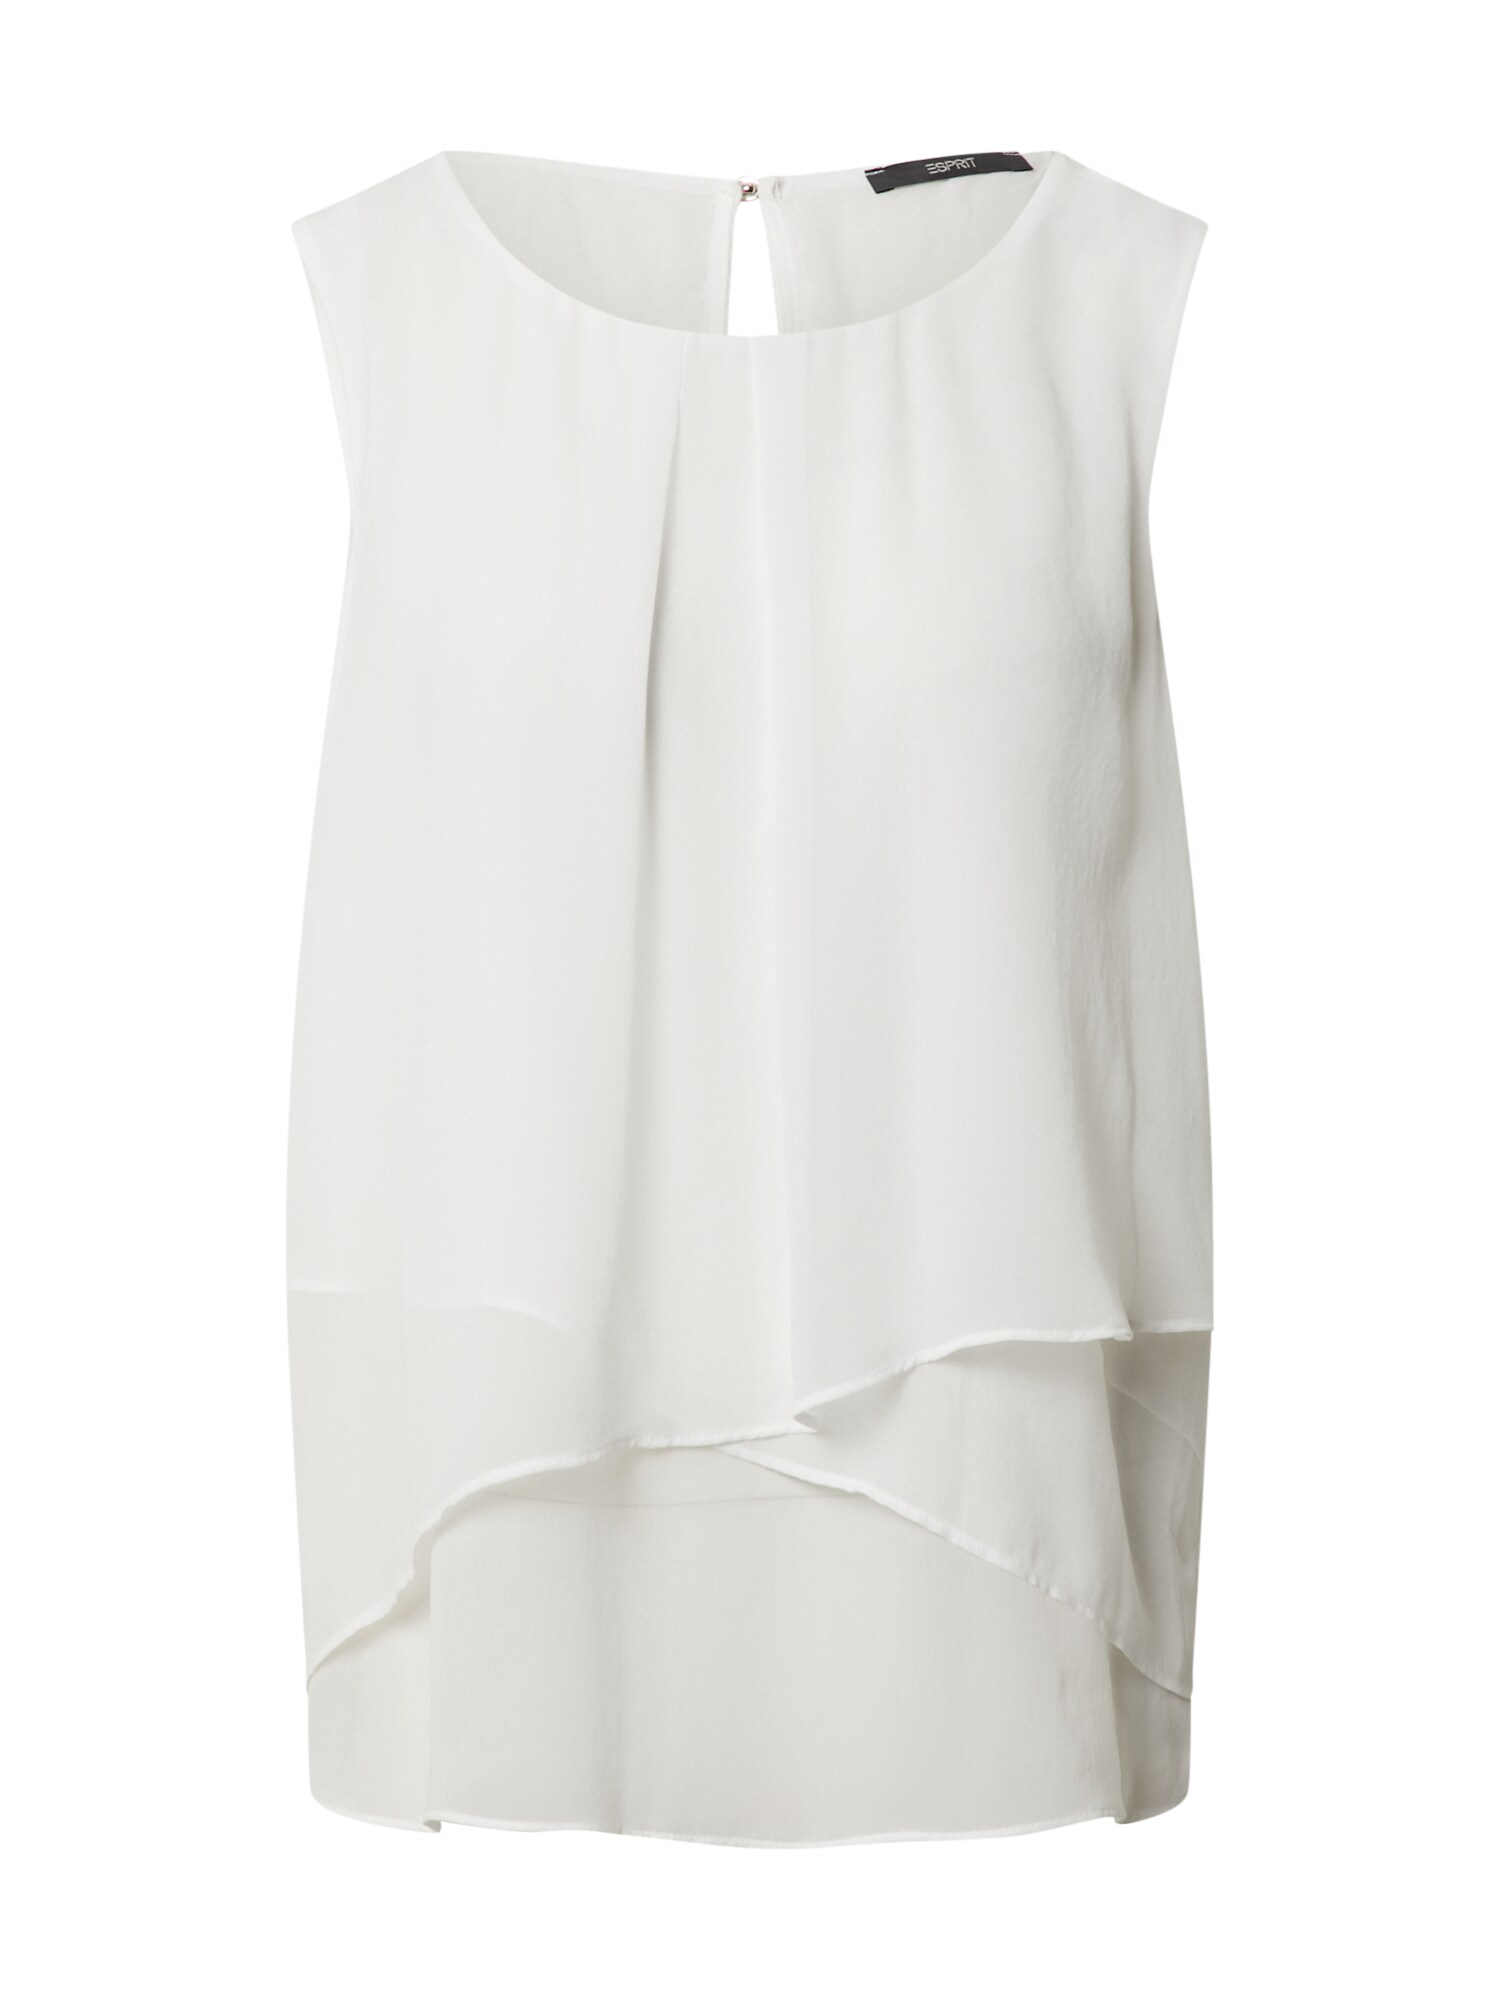 Halenka offwhite Esprit Collection